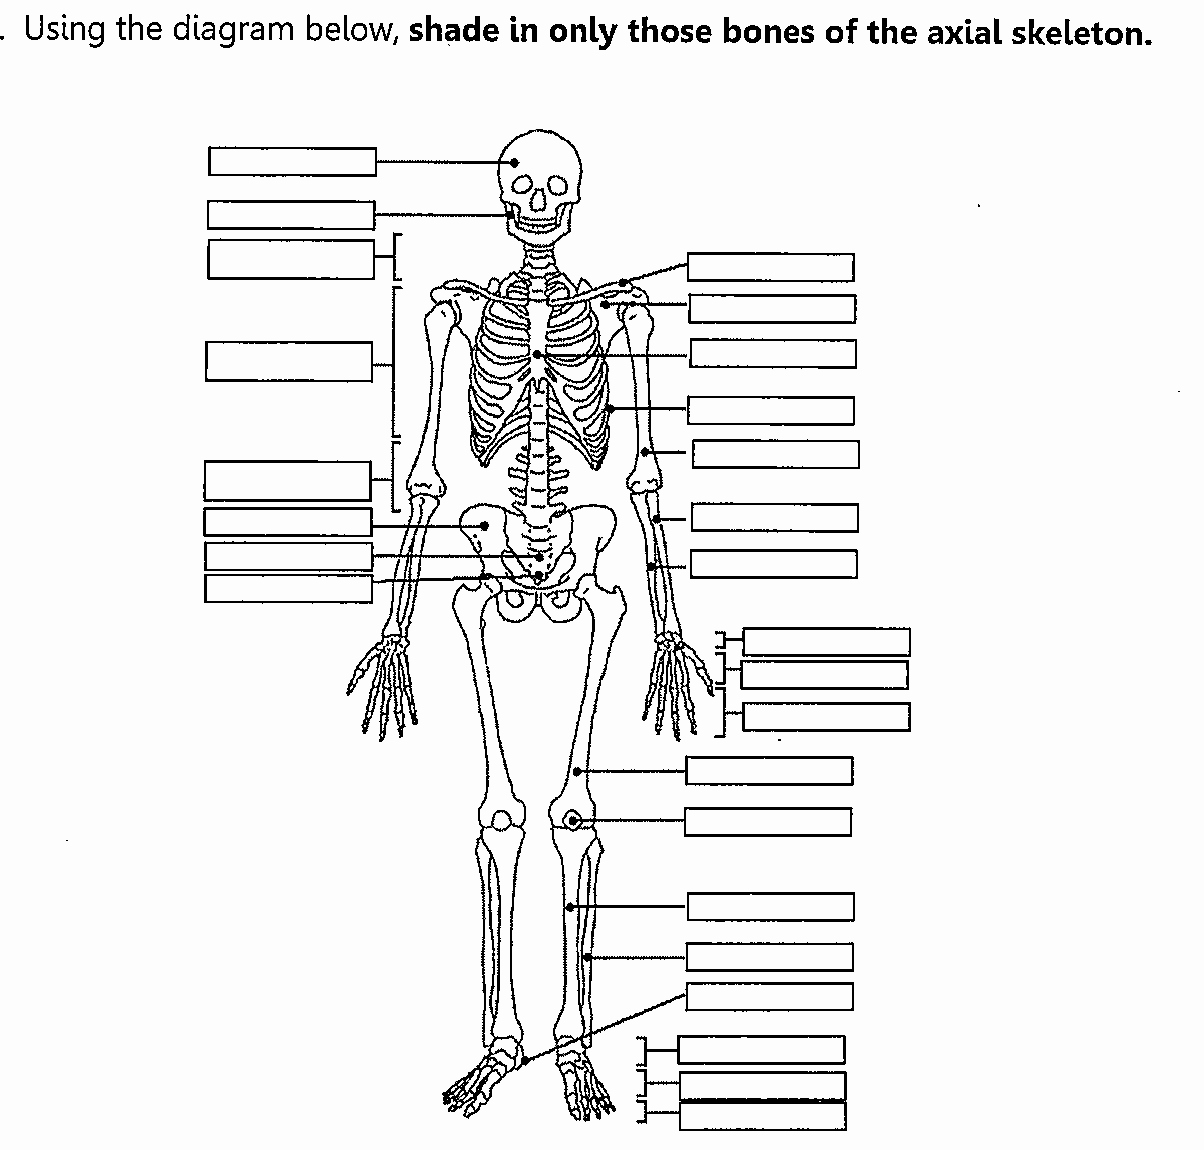 50 Appendicular Skeleton Worksheet Answers